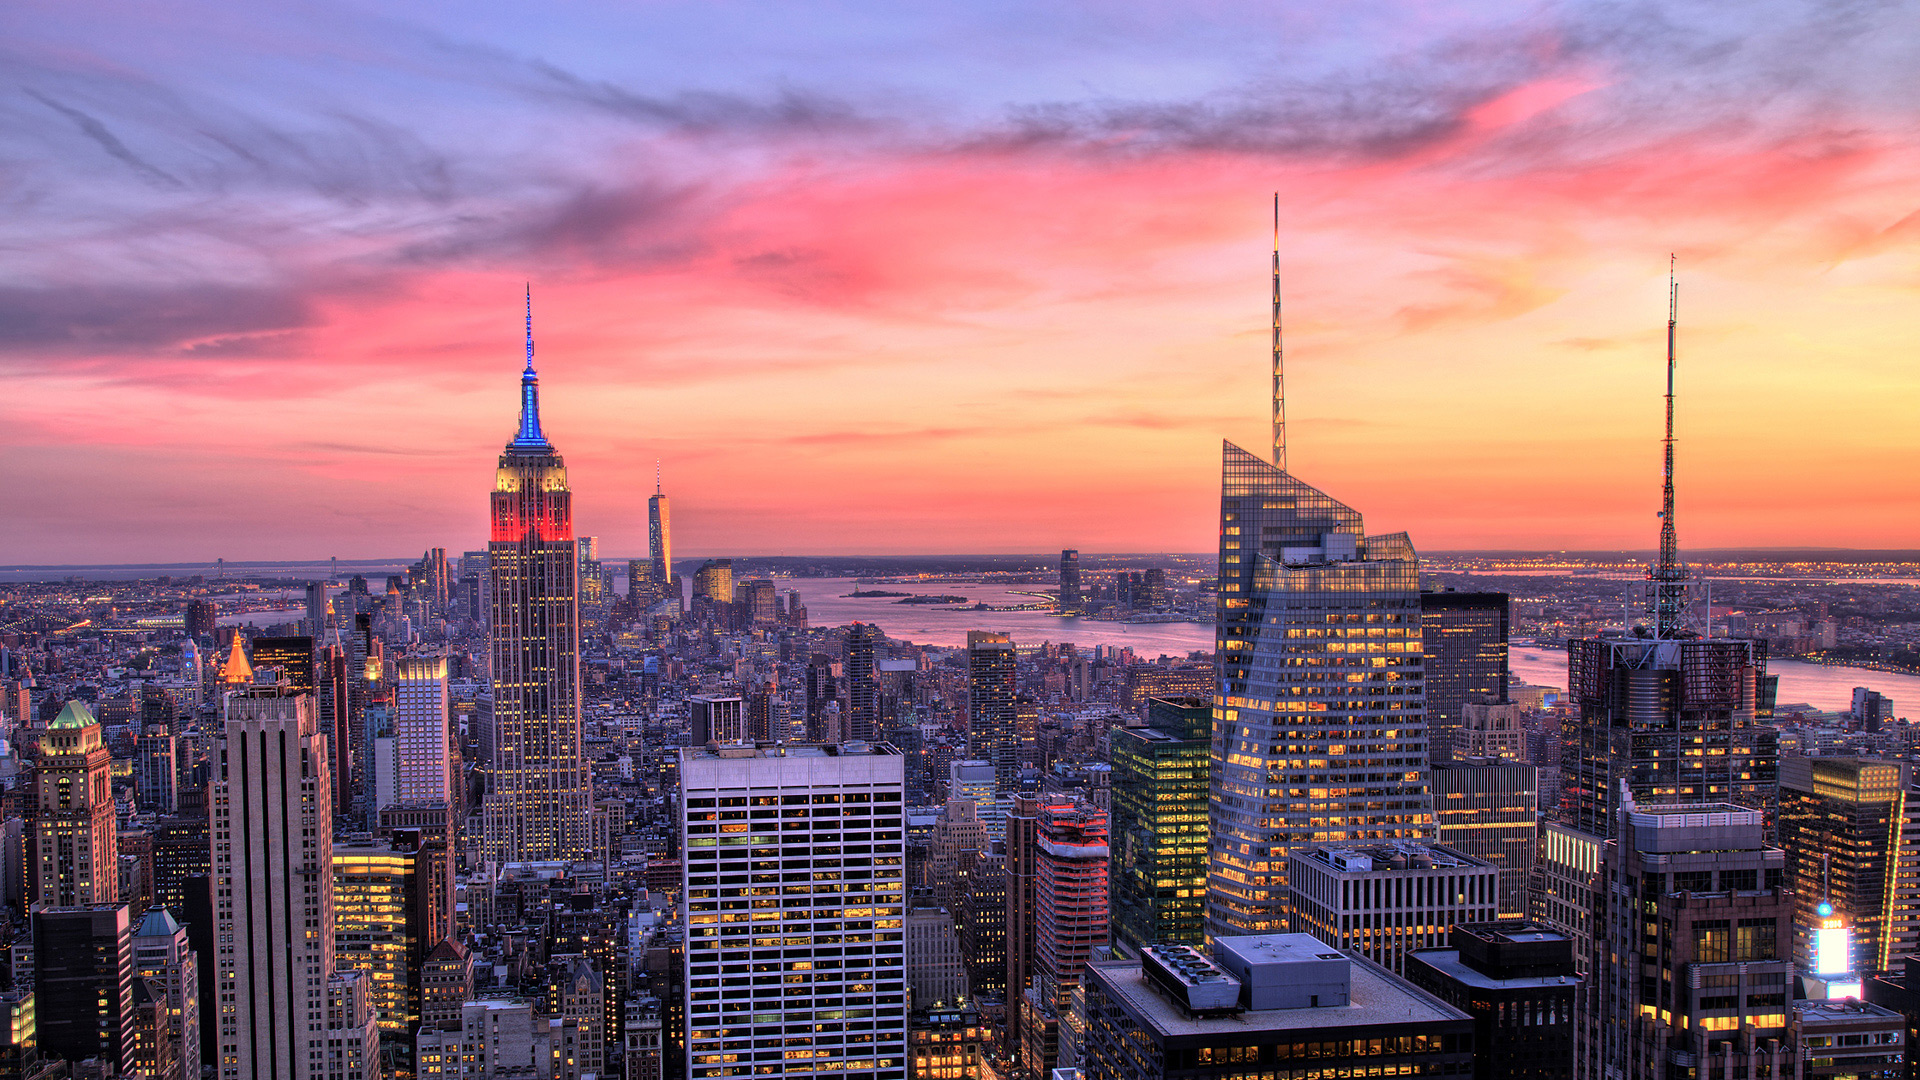 empire-state-building-sunset-images2-1920x1080